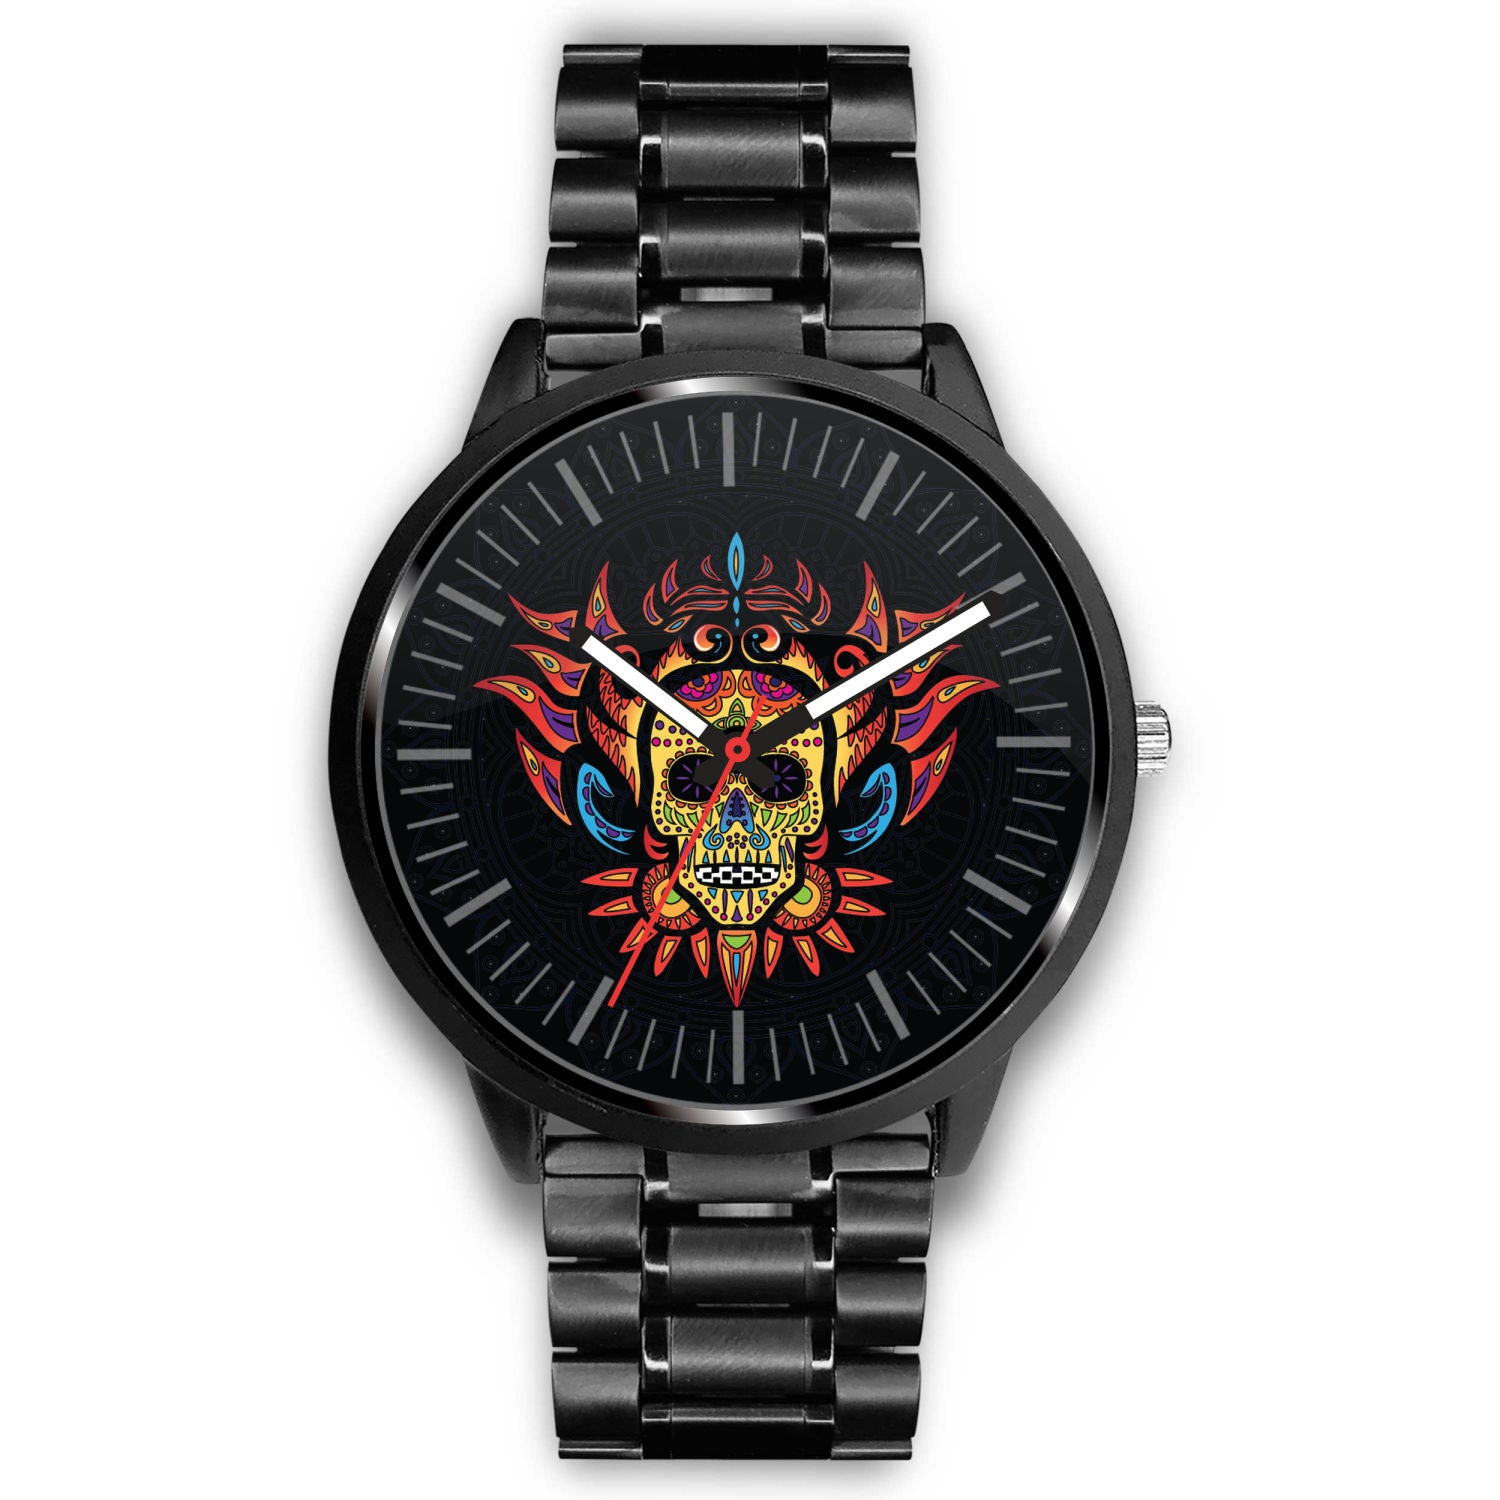 3D Skull Watch - Stainless steel back with leather/ stainless steel band 001